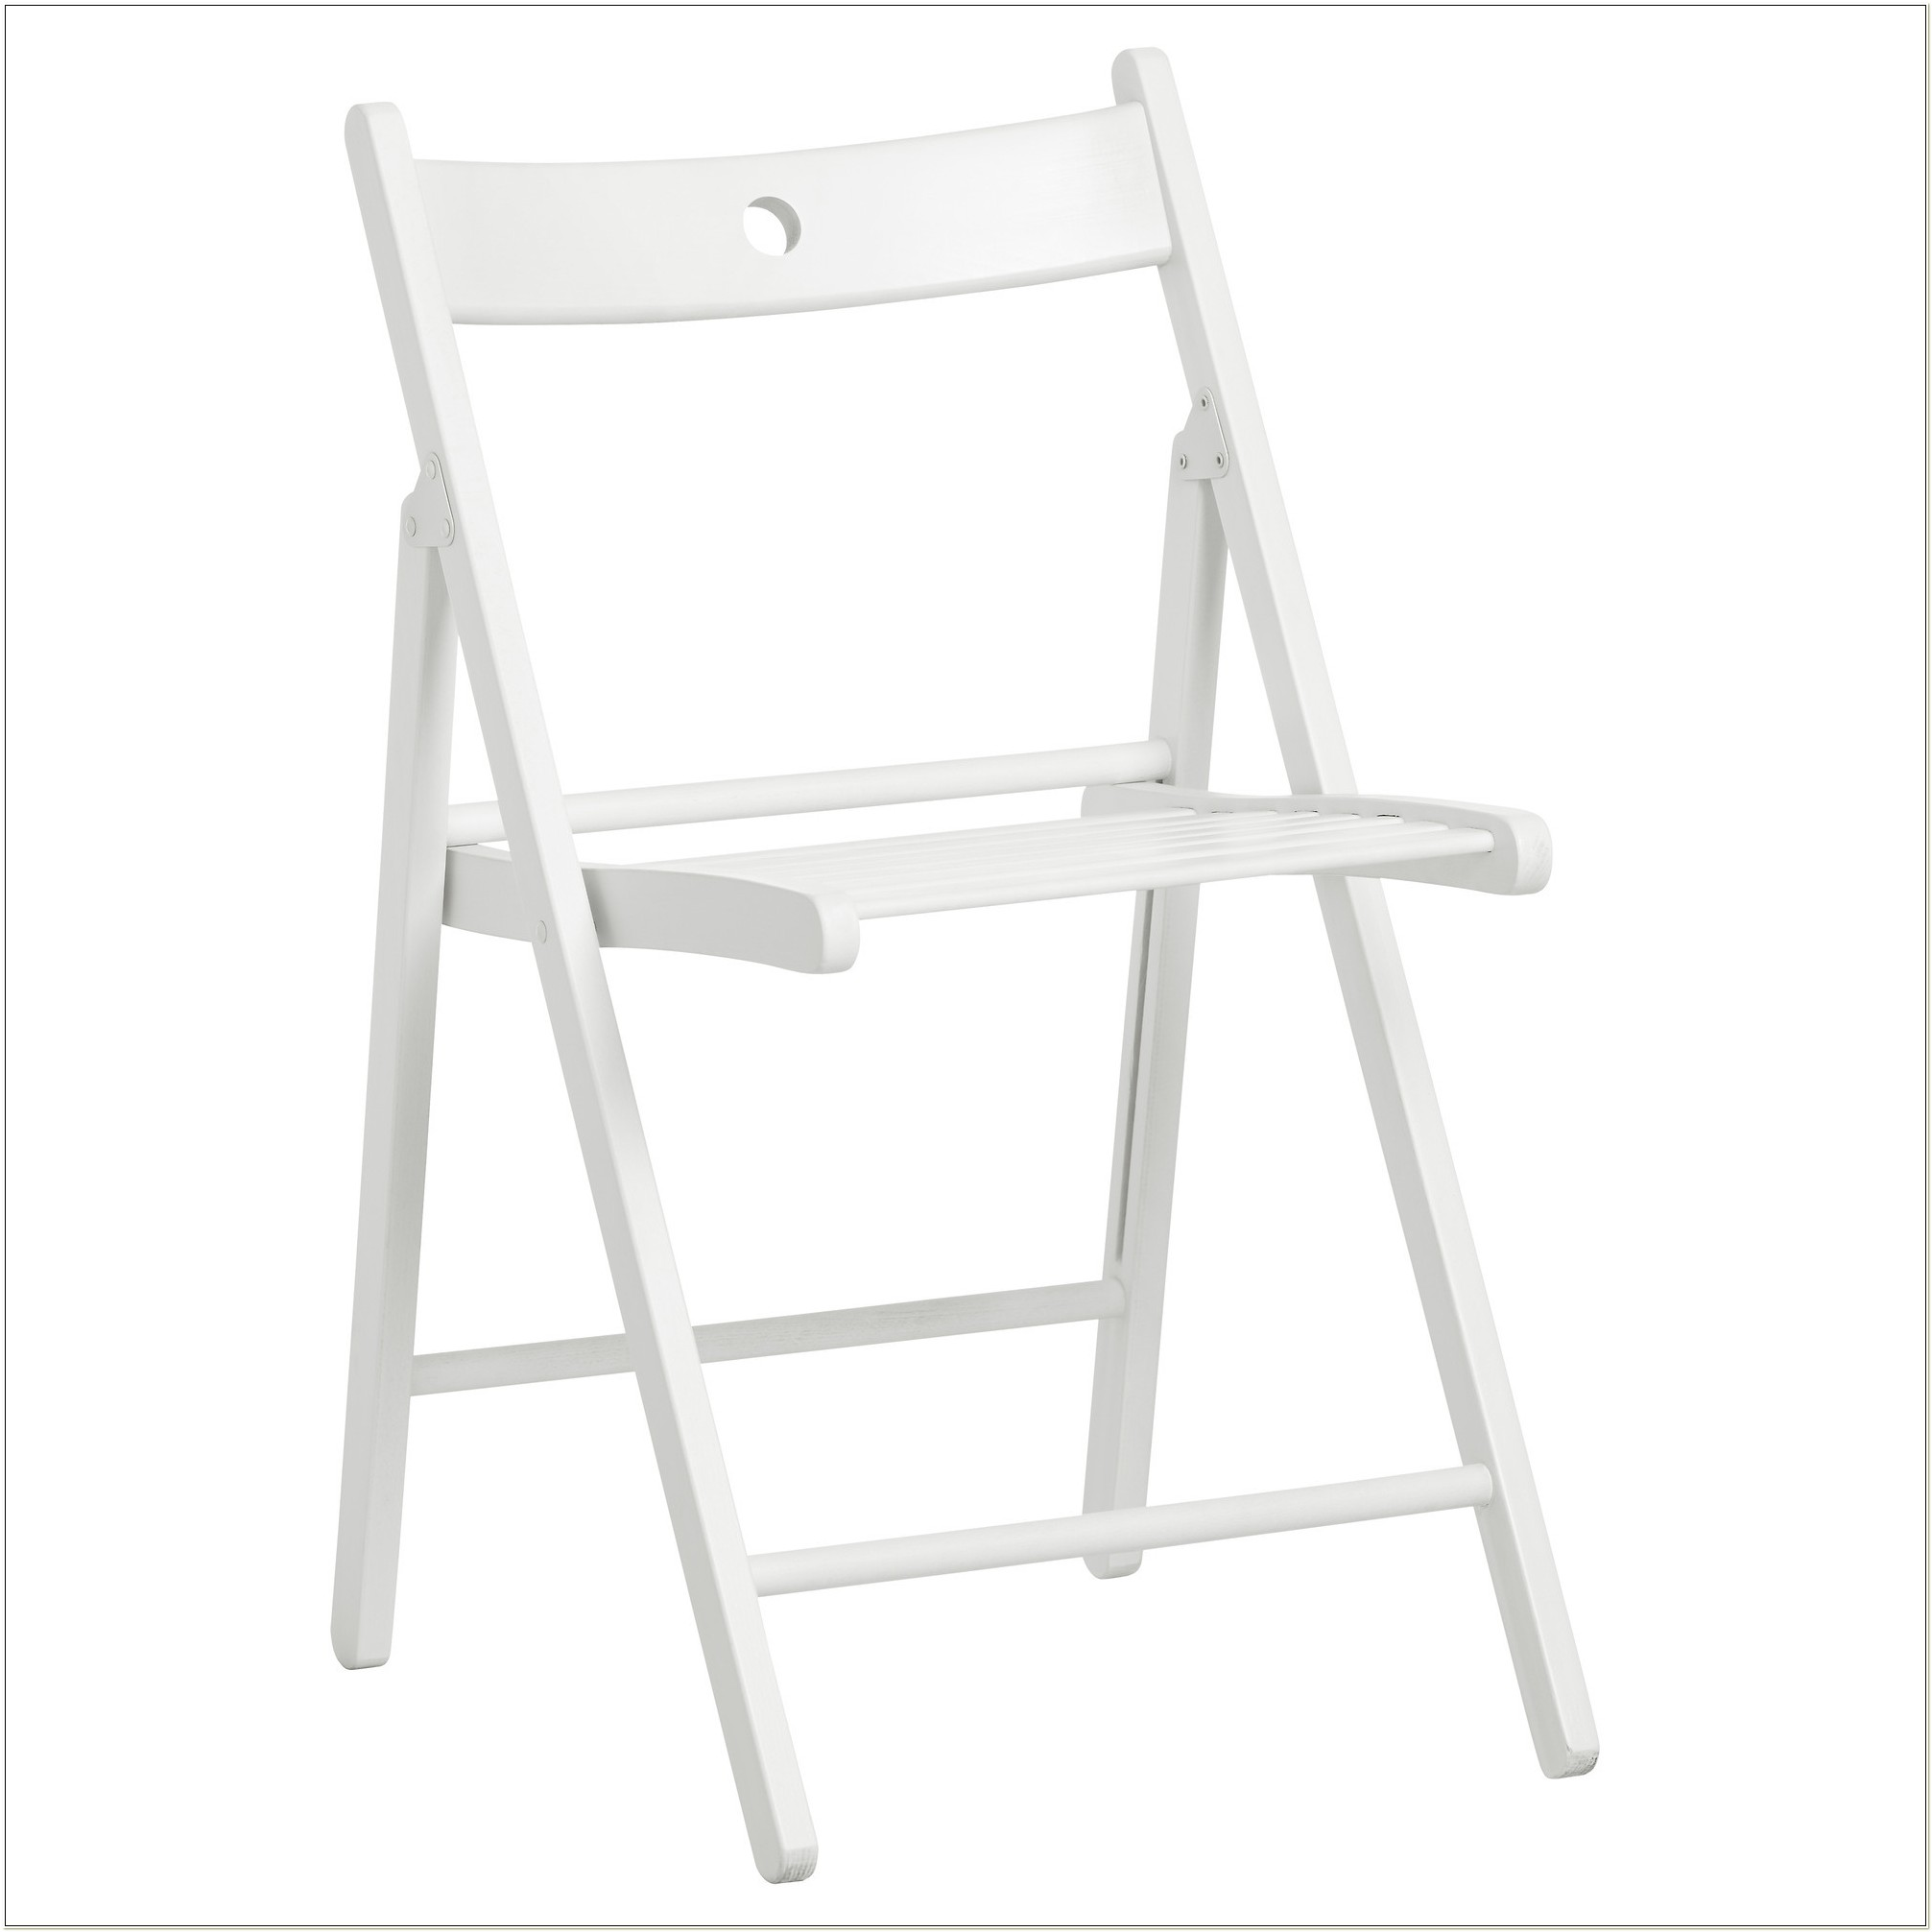 Ikea White Wooden Folding Chairs